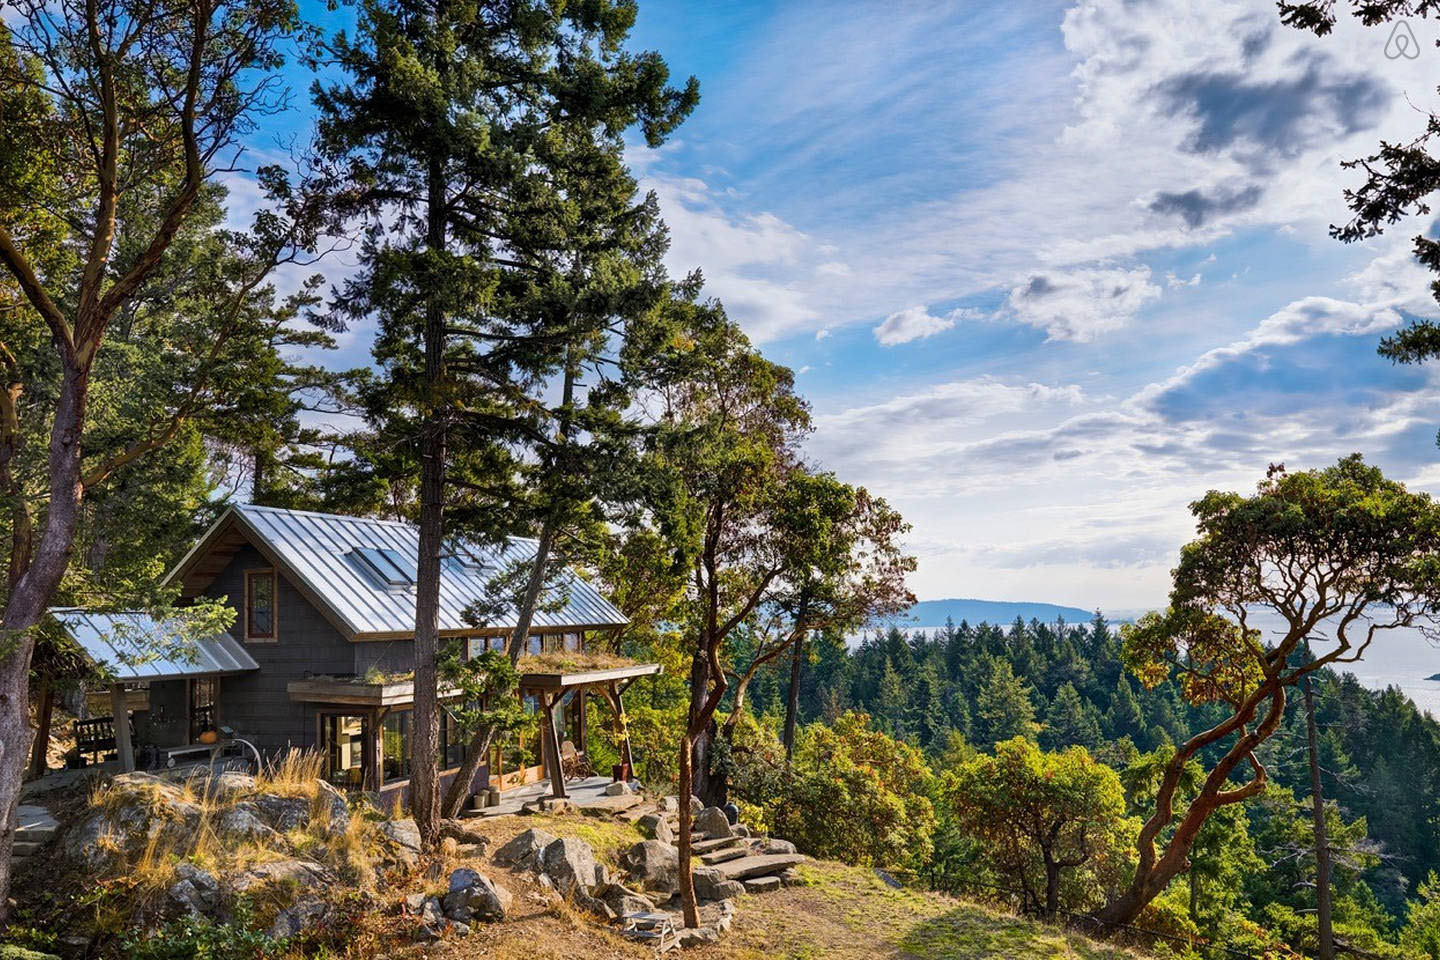 Pender Island Country Cabin